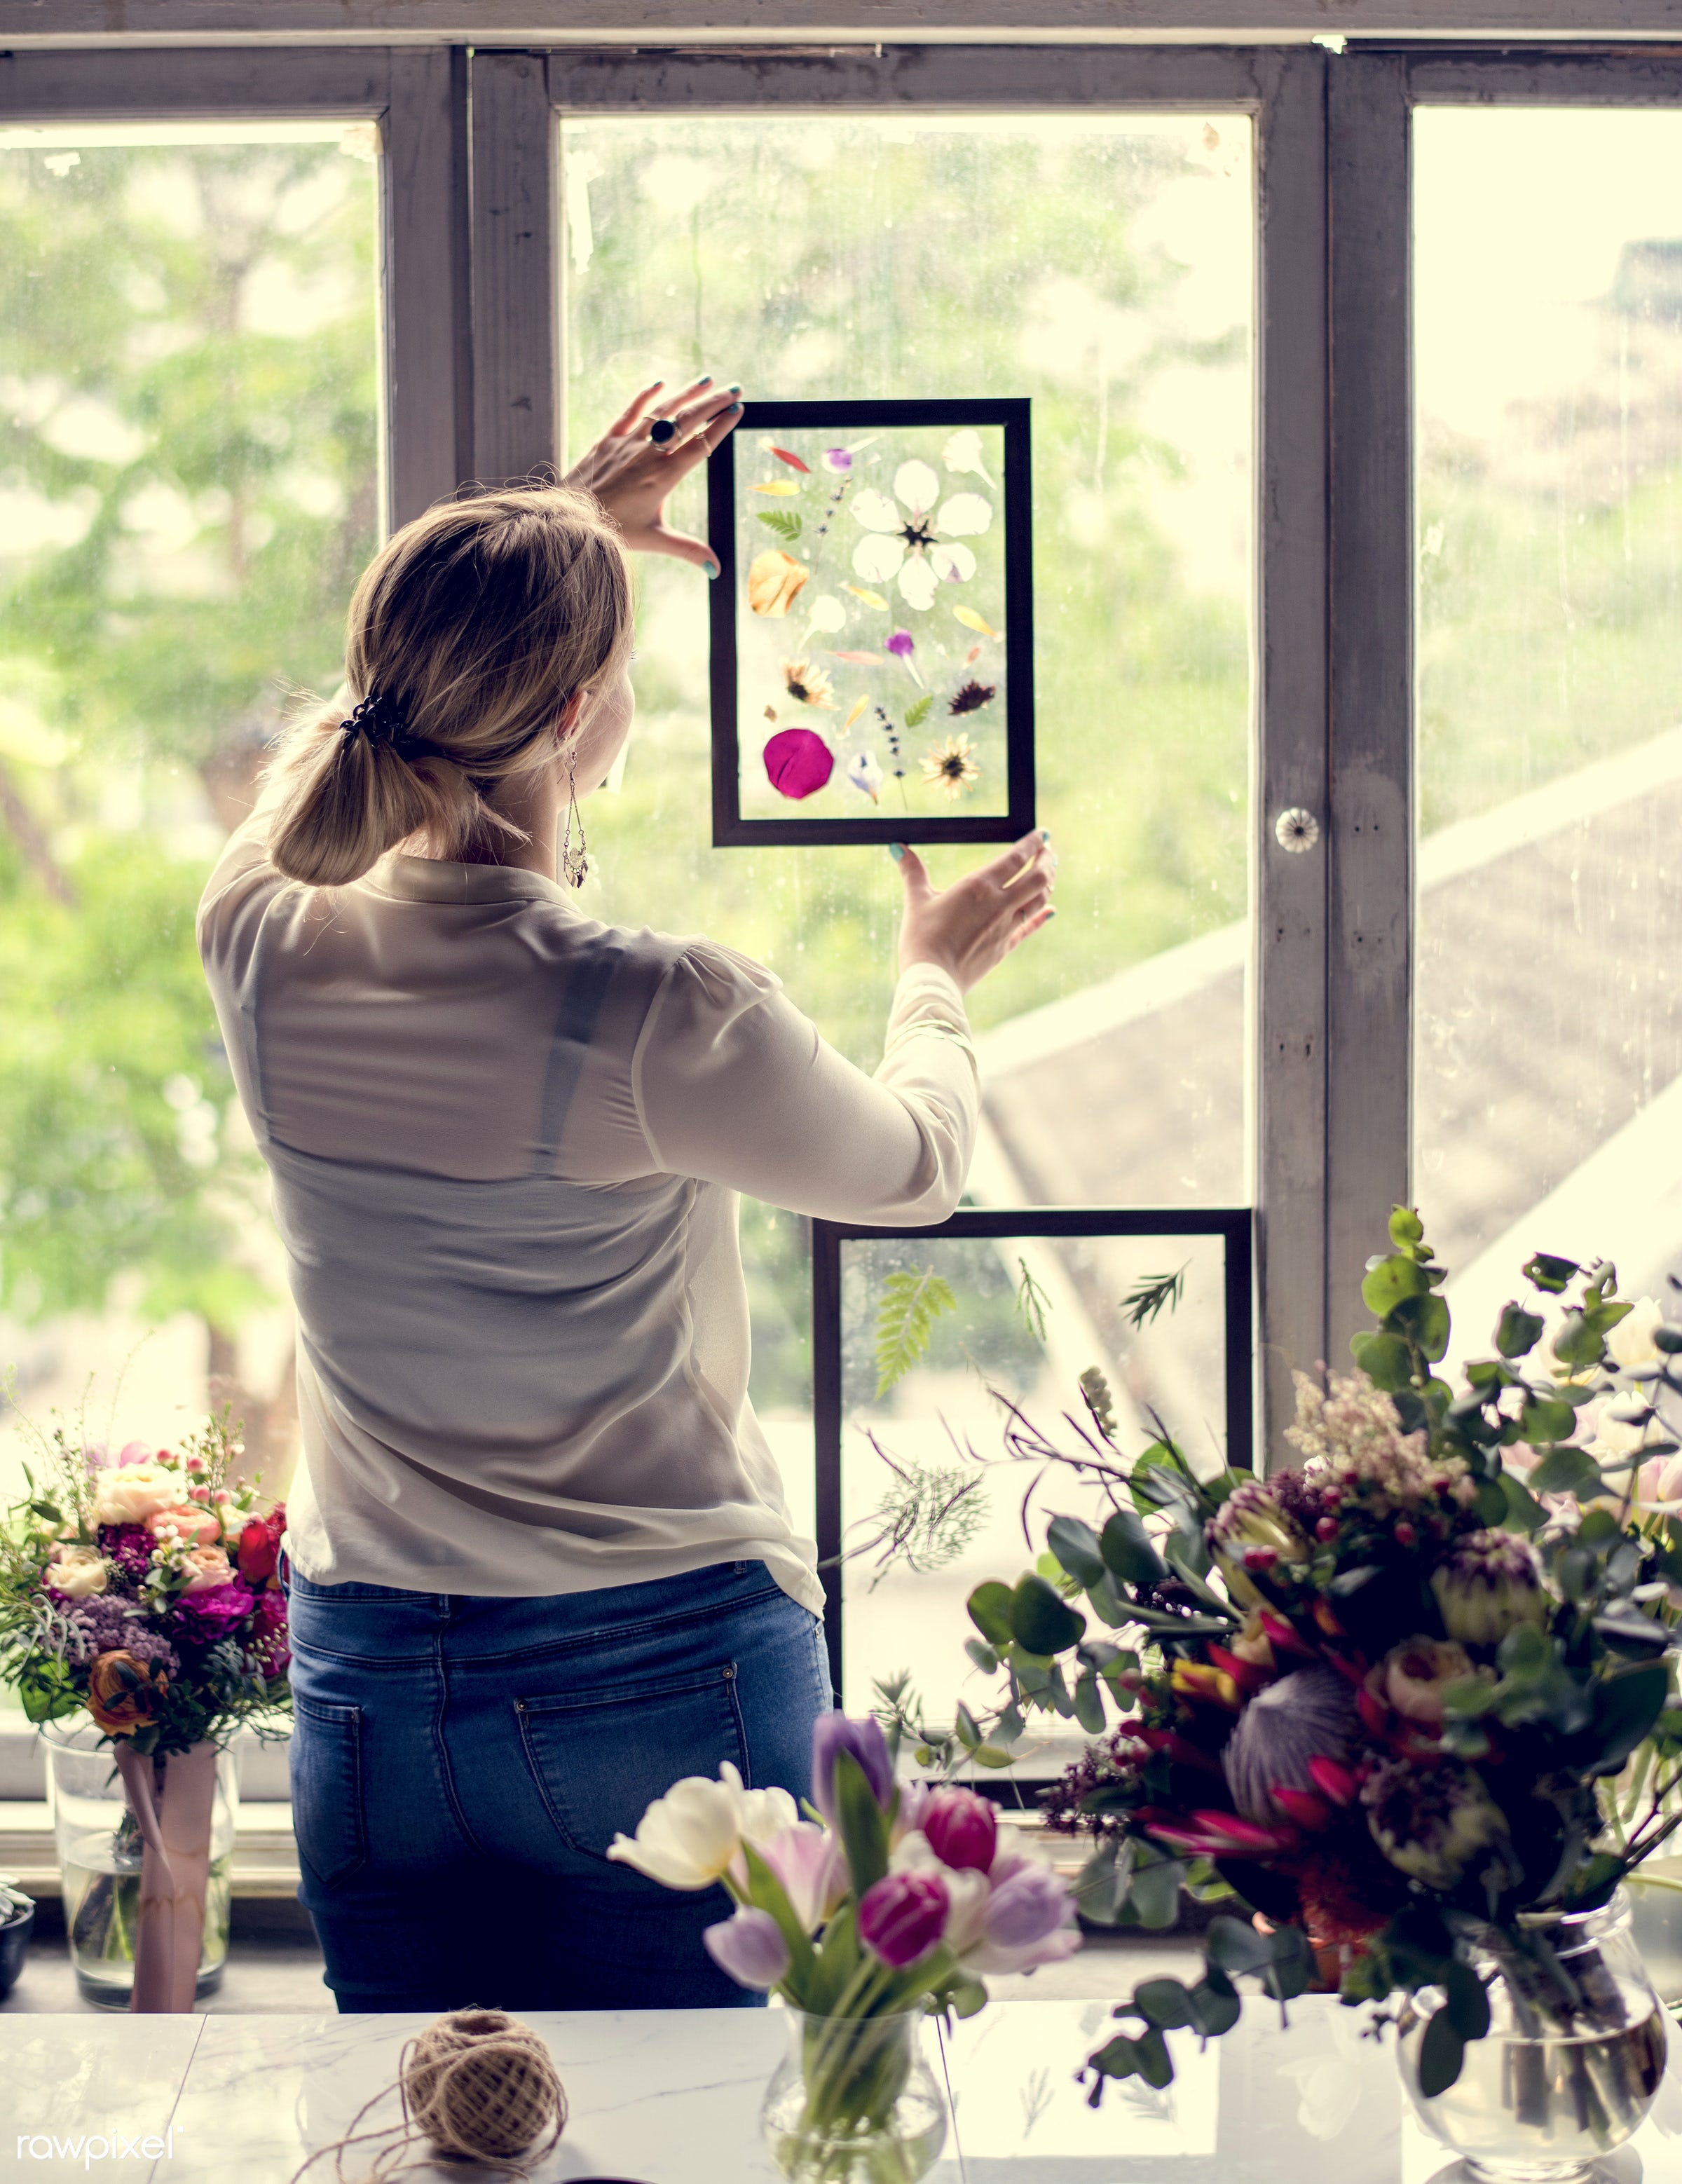 plant, shop, dried plant, person, holding, desk, beauty, leaf, creativity, people, blossom, nature, fresh, woman, pressed...